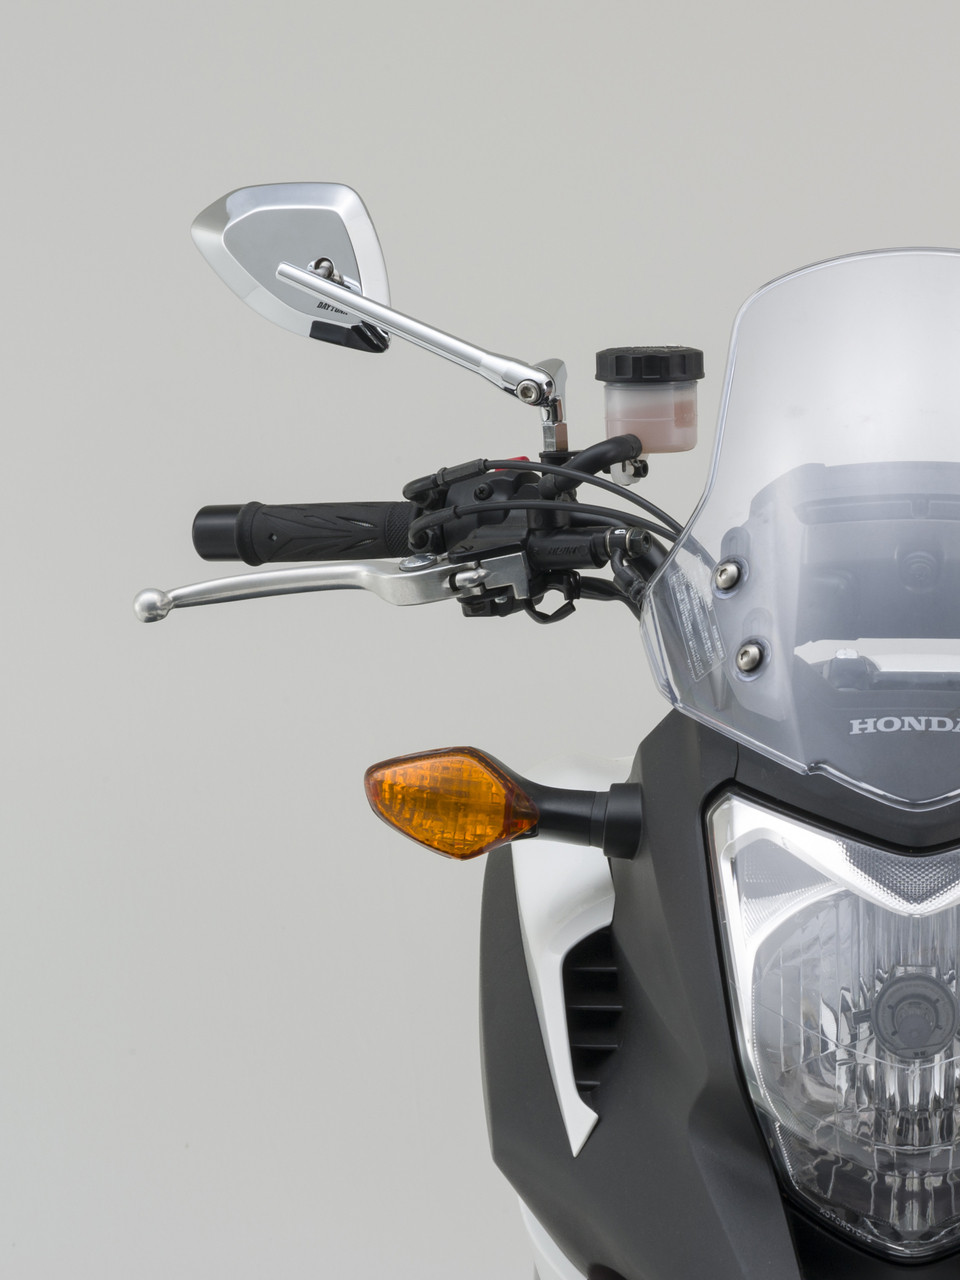 Daytona Motorcycle D-Mirror, Chrome, M10×P1.25, CLEARANCE CLOSE OUT SALE!